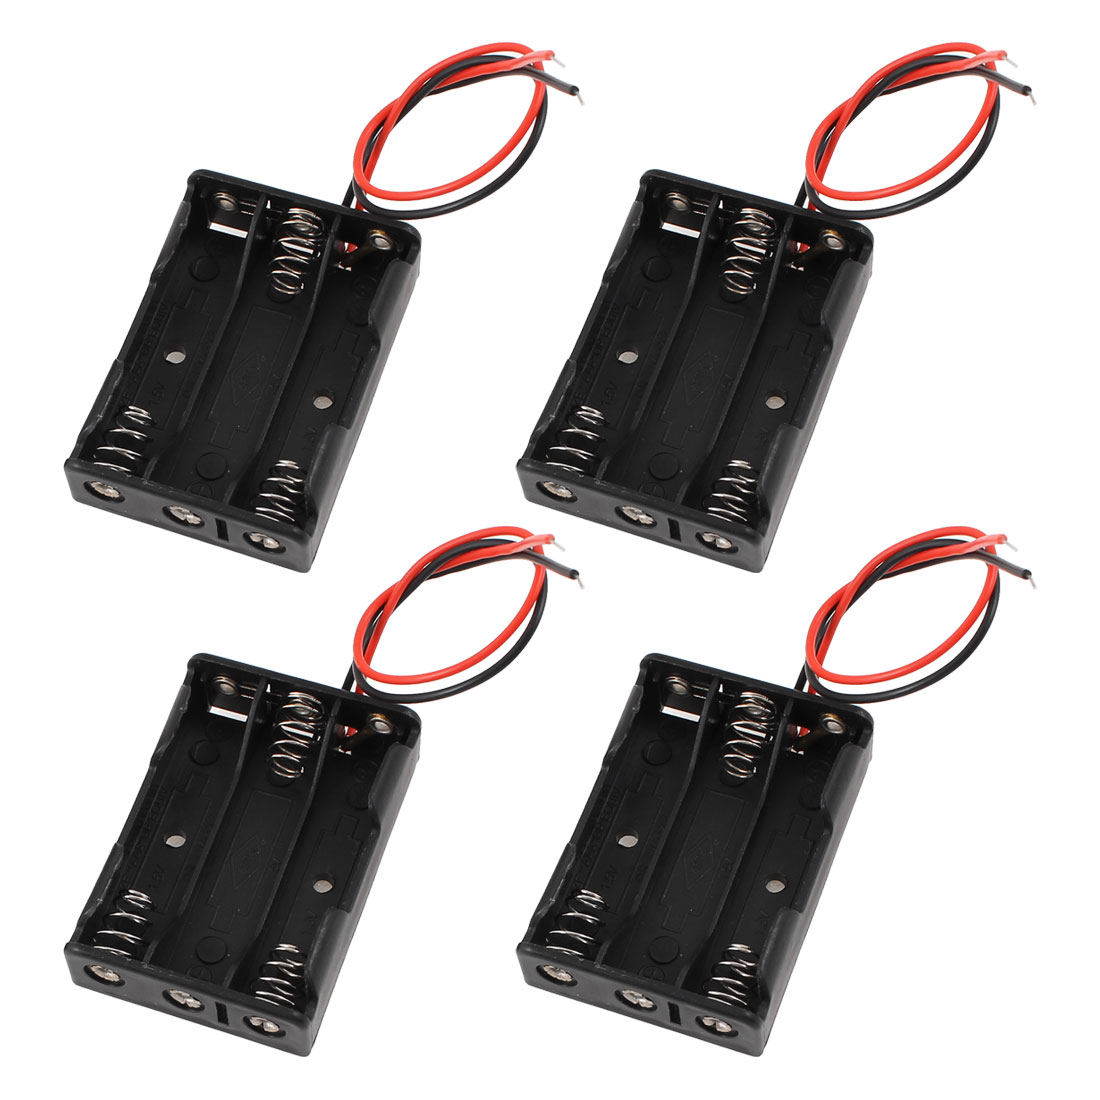 4 Pcs Wires Connector 3 x 1.5V AAA Battery Holder Plastic Case Storage Box